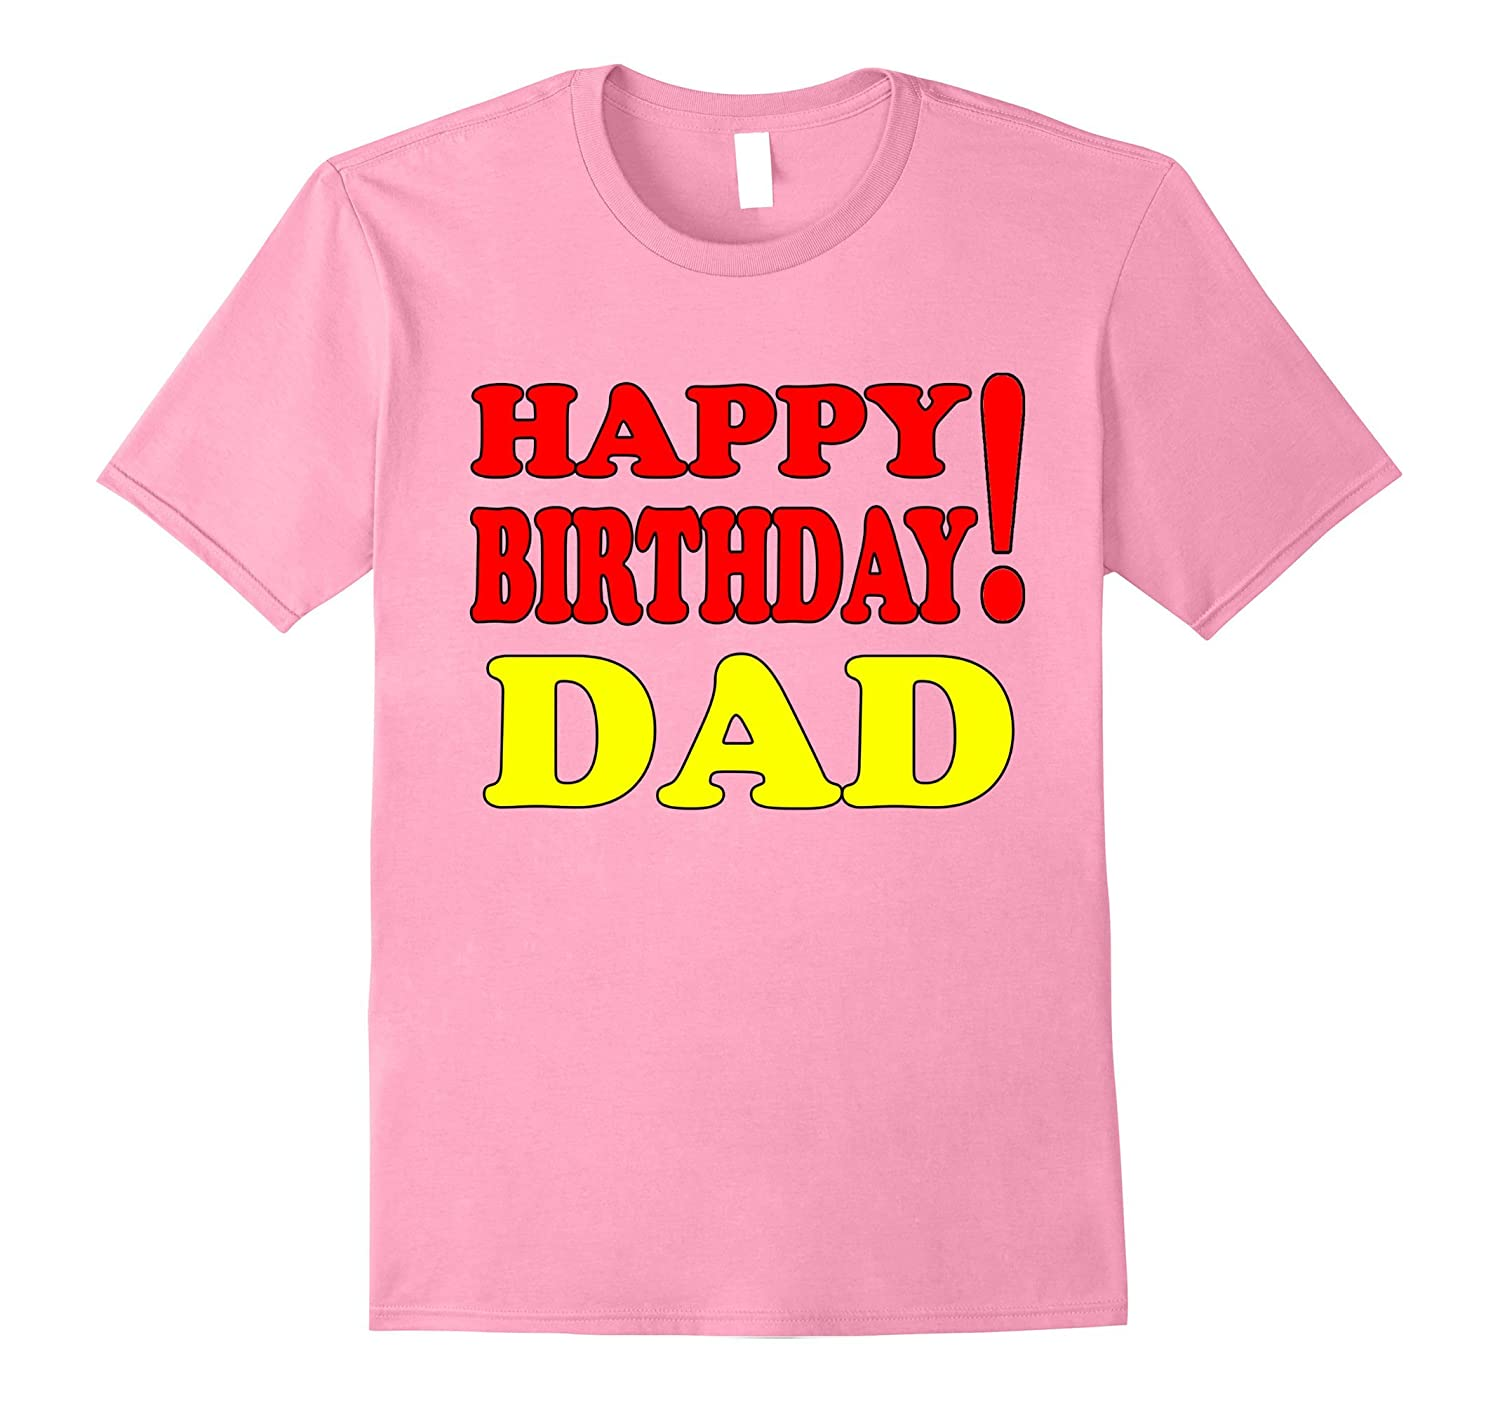 Coolest Ideas Gifts Shirt Happy Birthday To DAD Sdu